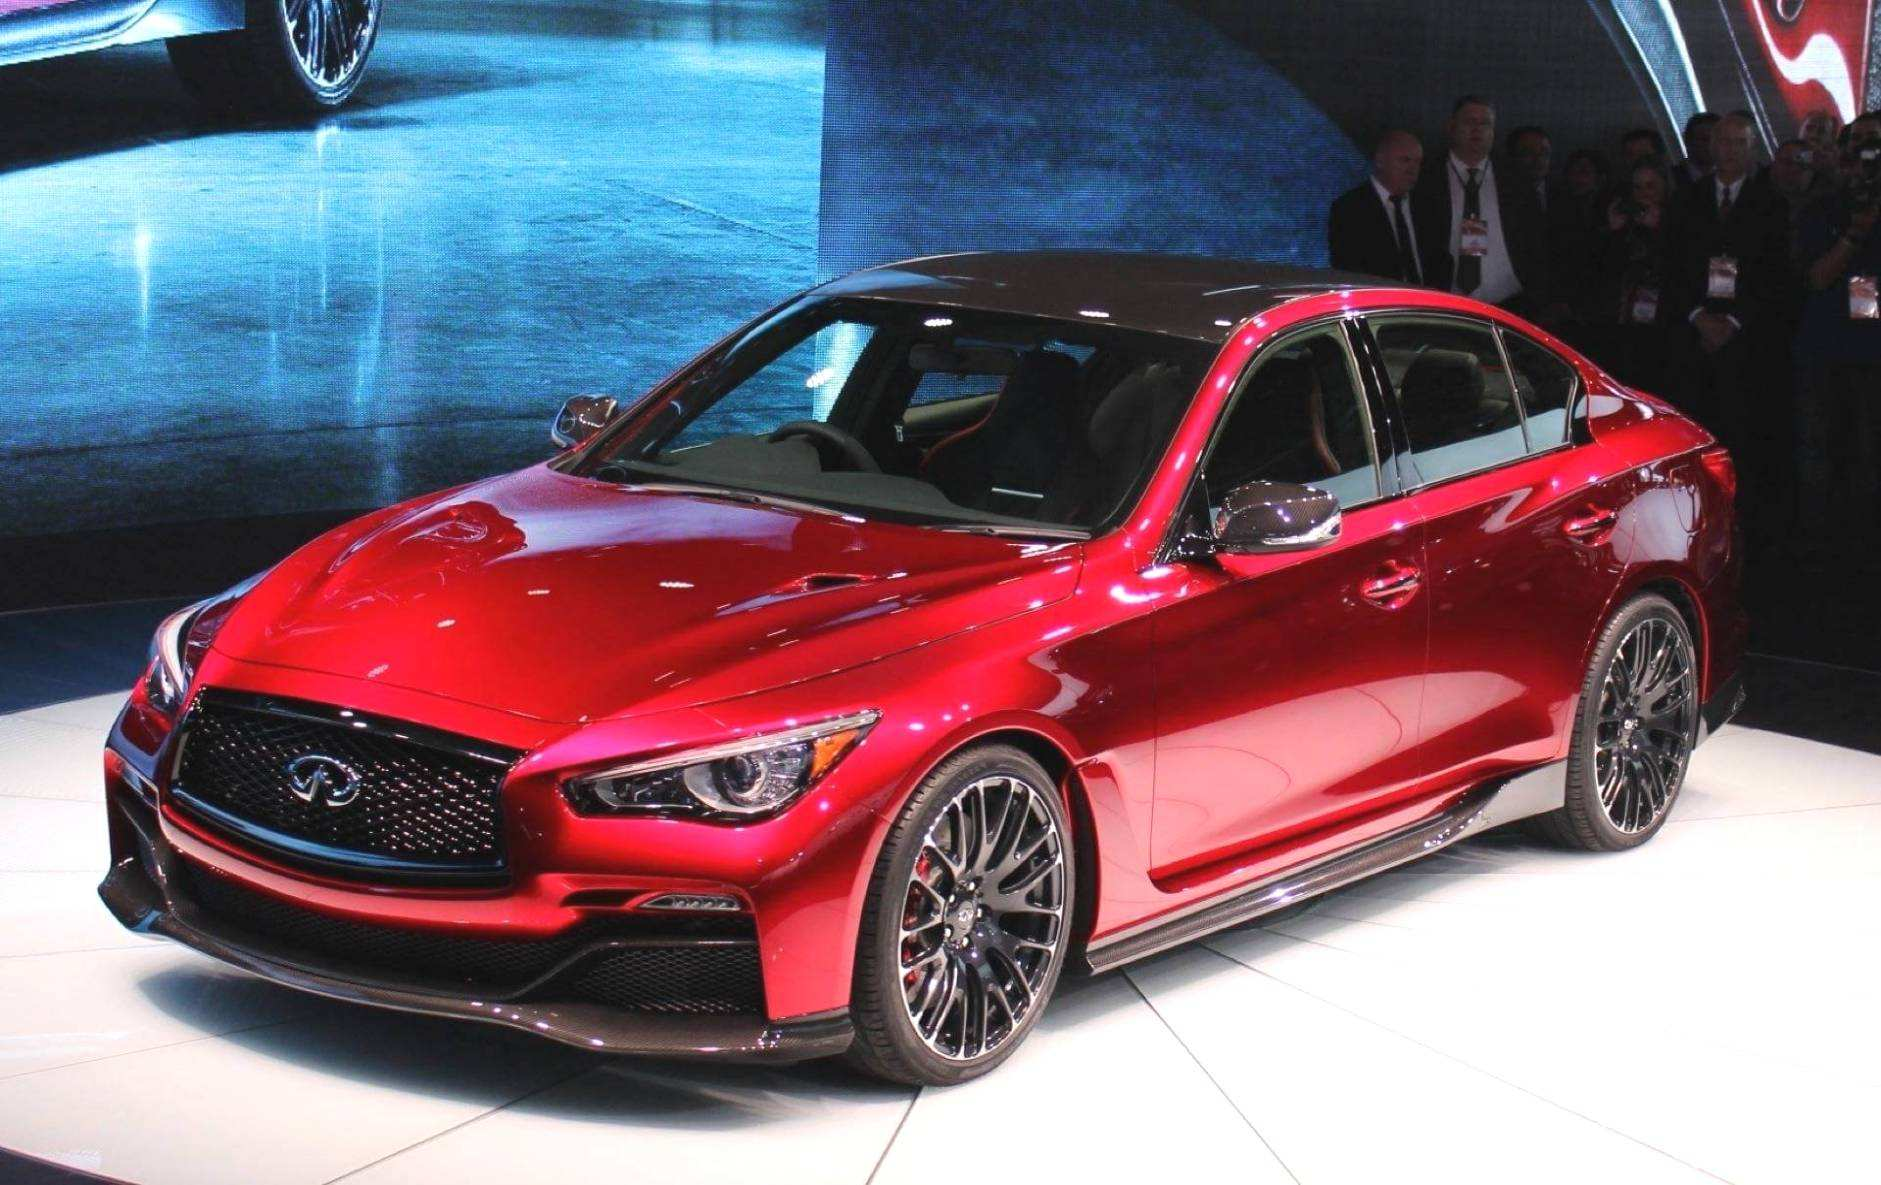 49 Concept of 2020 Infiniti Q50 Horsepower Price by 2020 Infiniti Q50 Horsepower